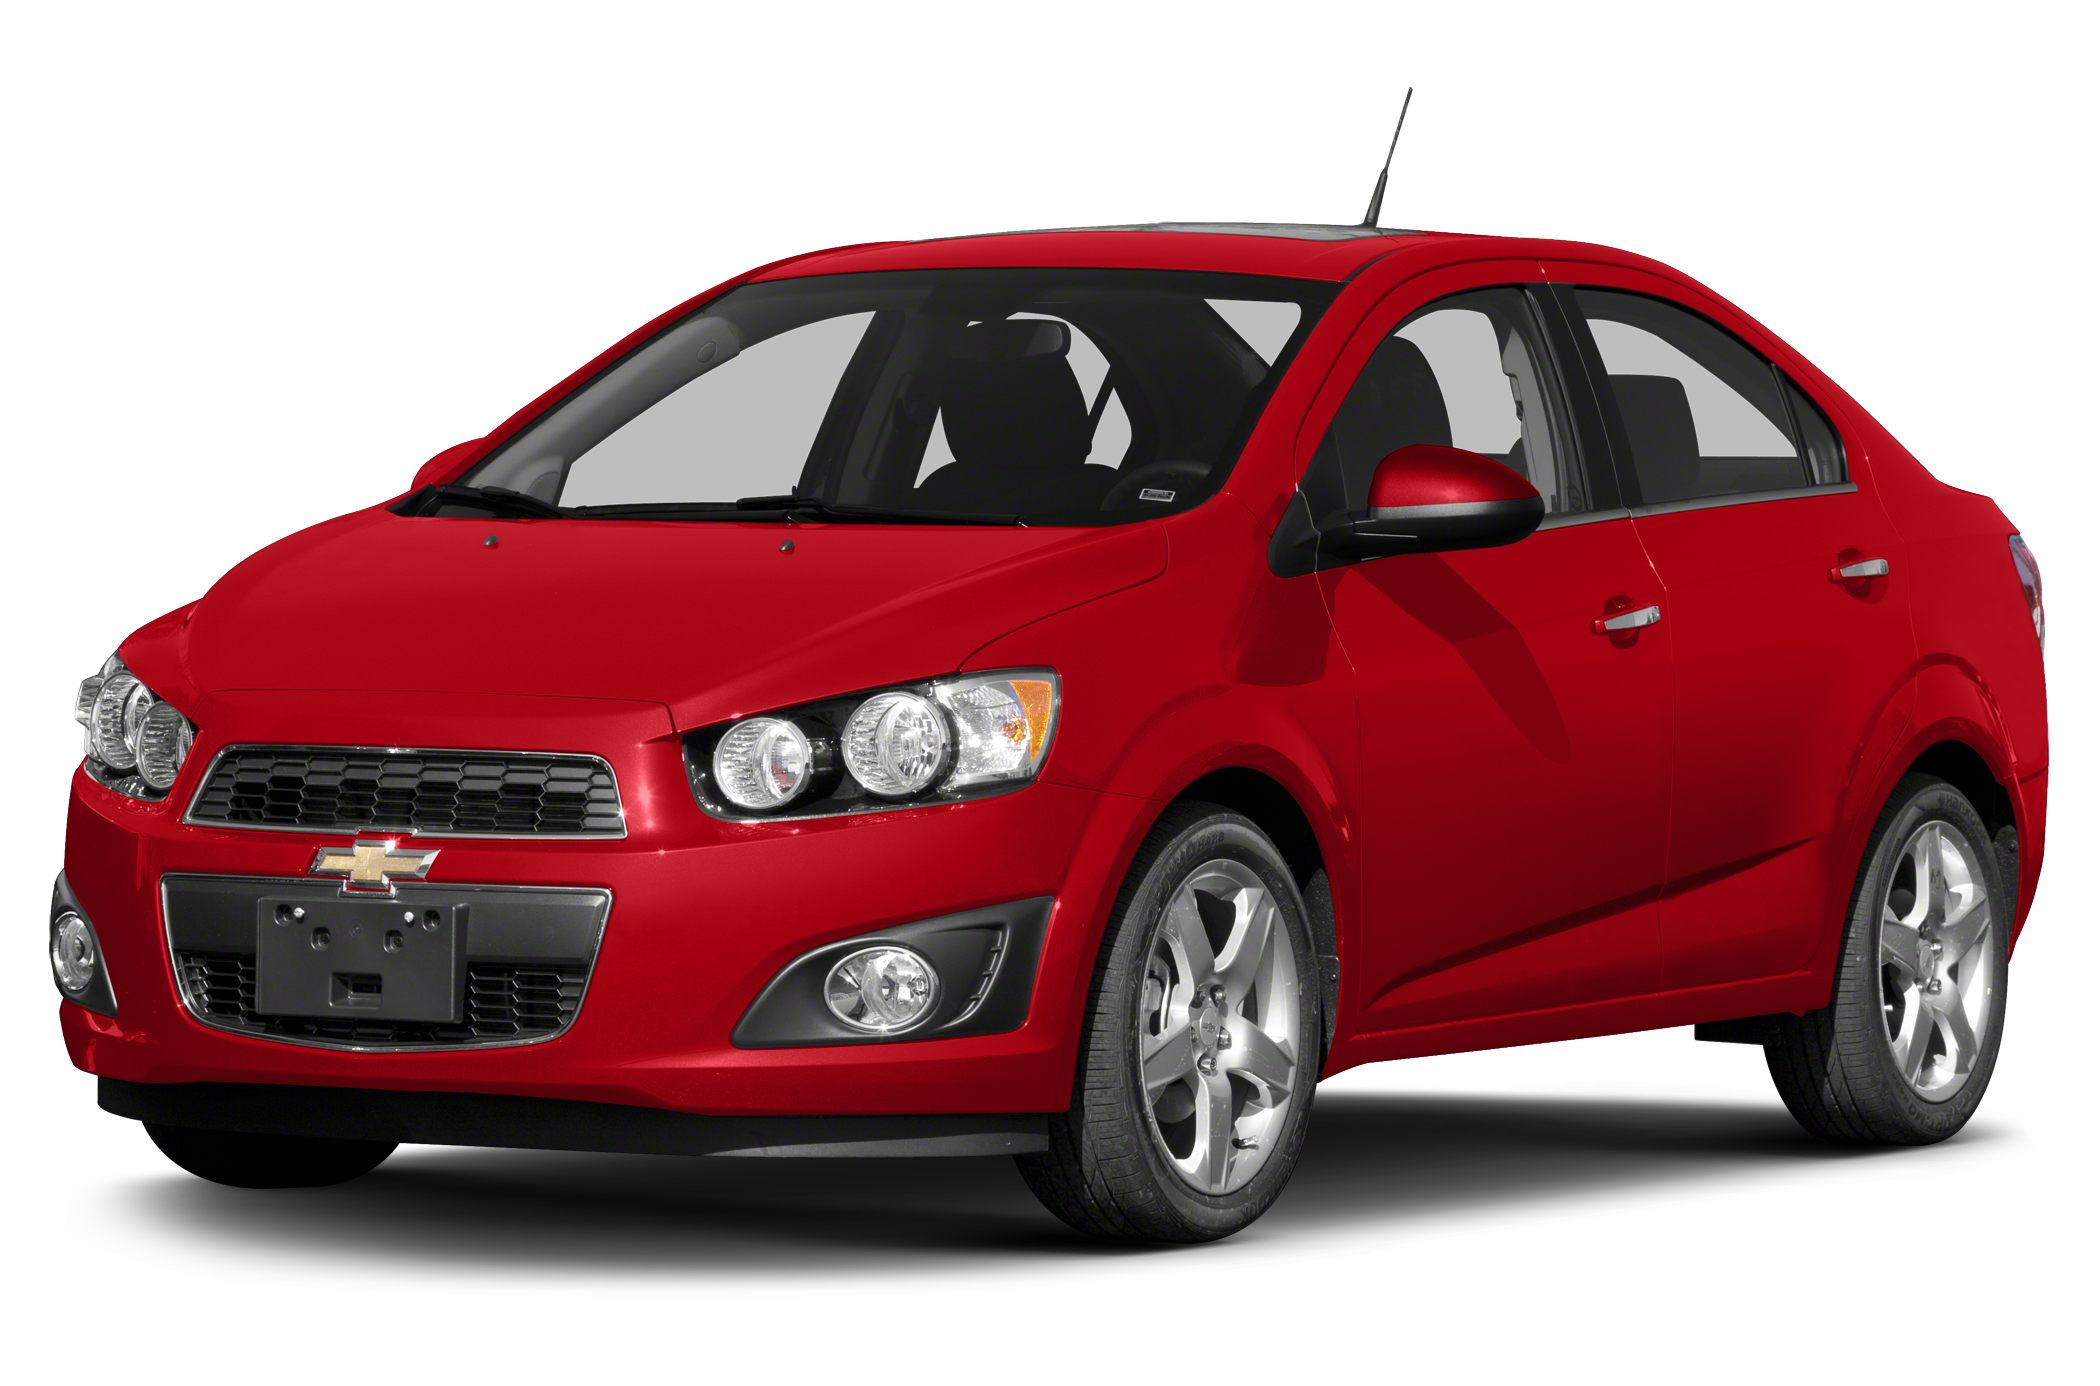 2014 Chevrolet Sonic LTZ Sedan for sale in Medina for $14,979 with 11,494 miles.